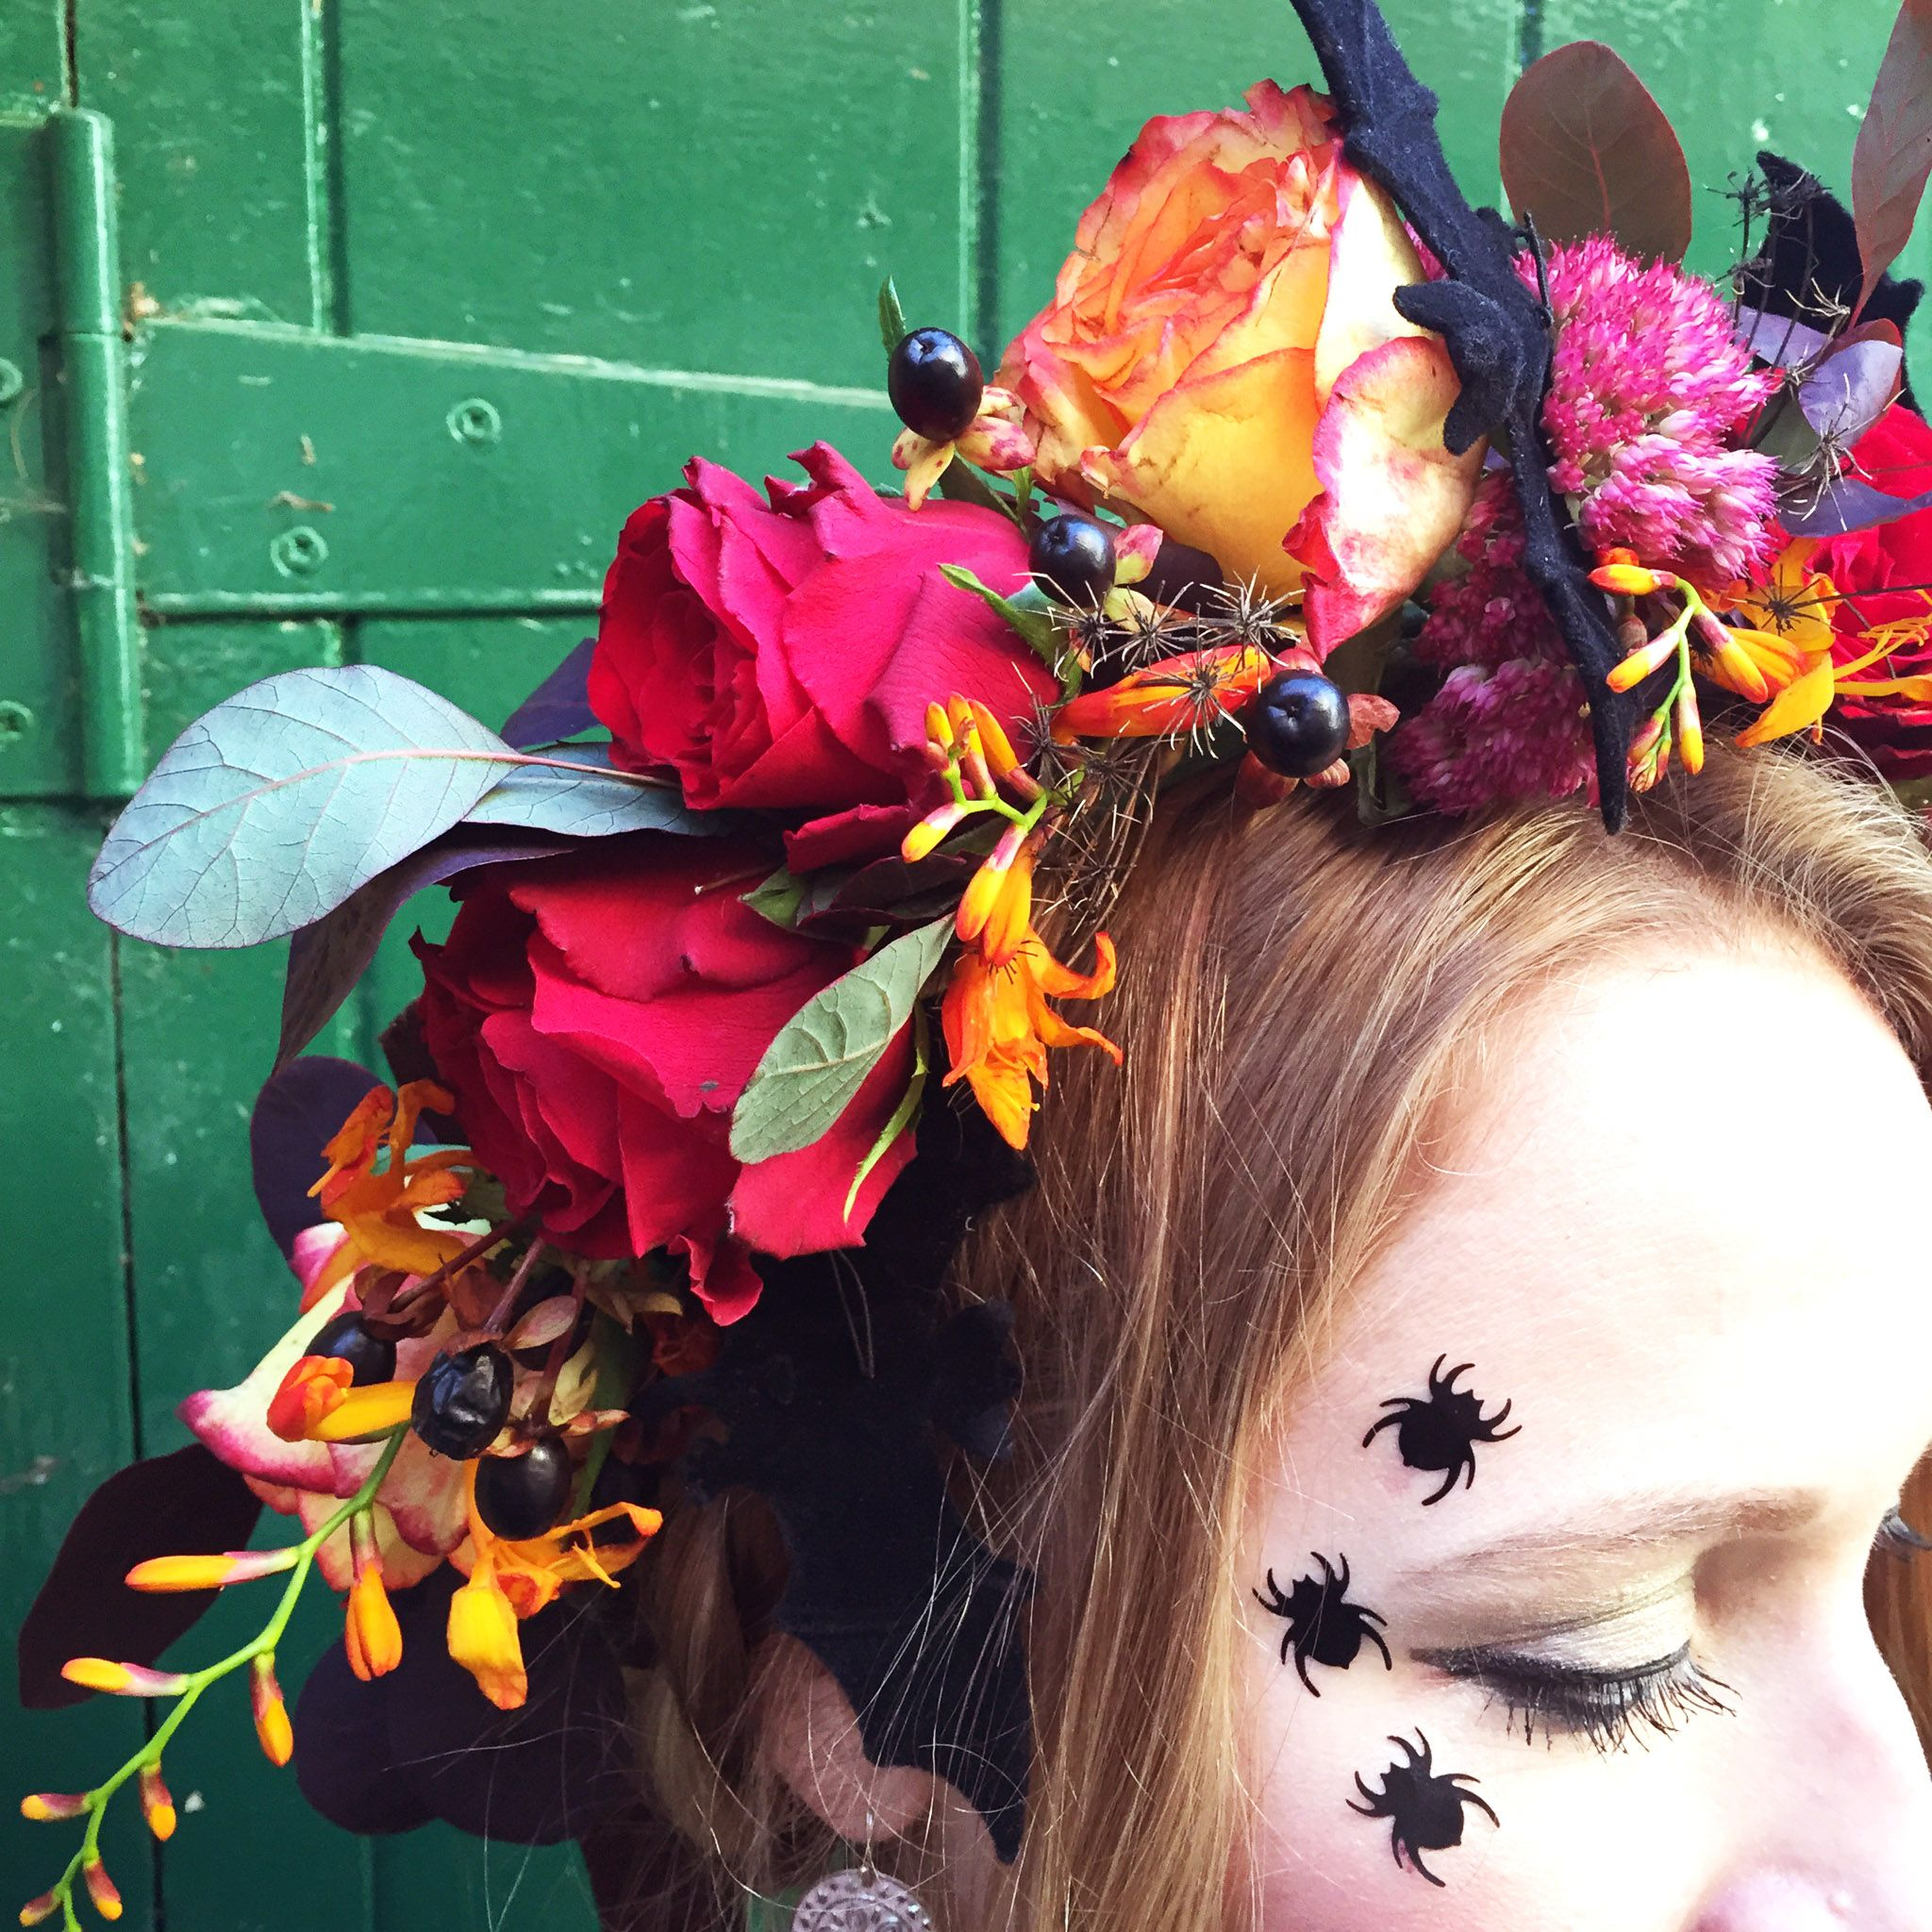 Make a Halloween Headdress workshop! Friday 30th October, 7-8.30pm, Betty Blythe Vintage Tea rooms, Brook Green, London.  Bookings at www.heavenlyheaddress.com